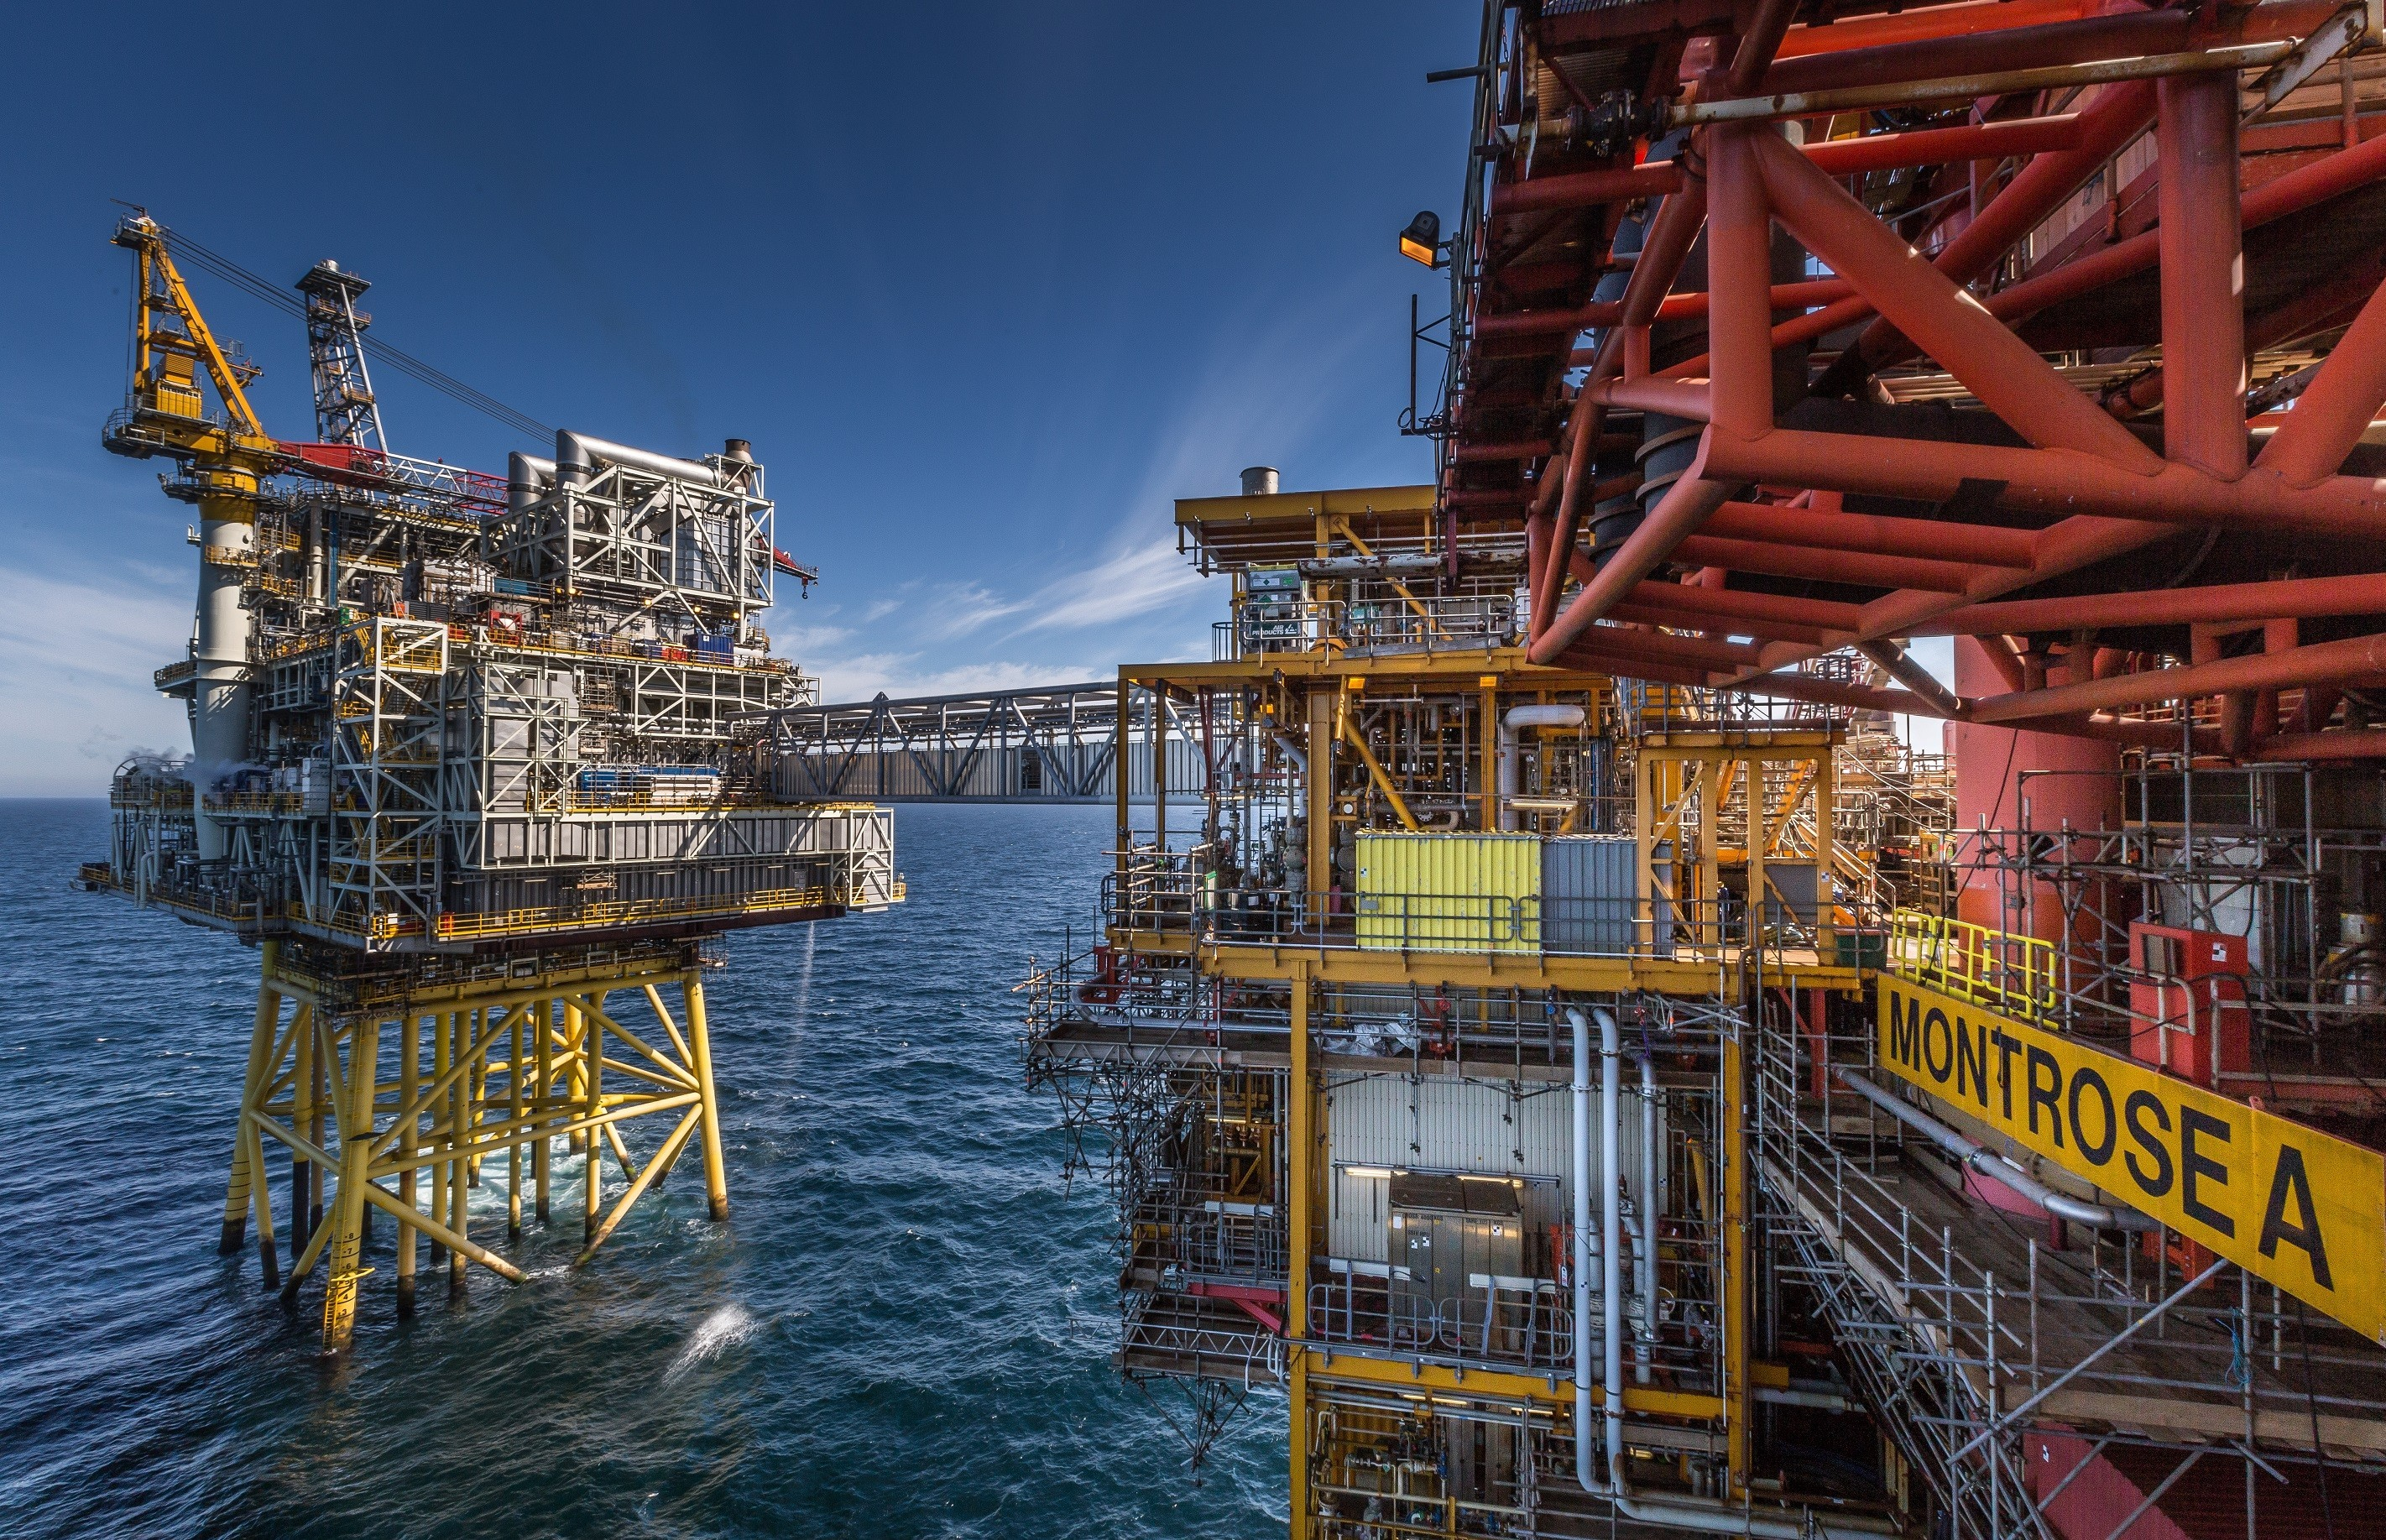 Repsol Sinopec's business plan fully focused on North Sea